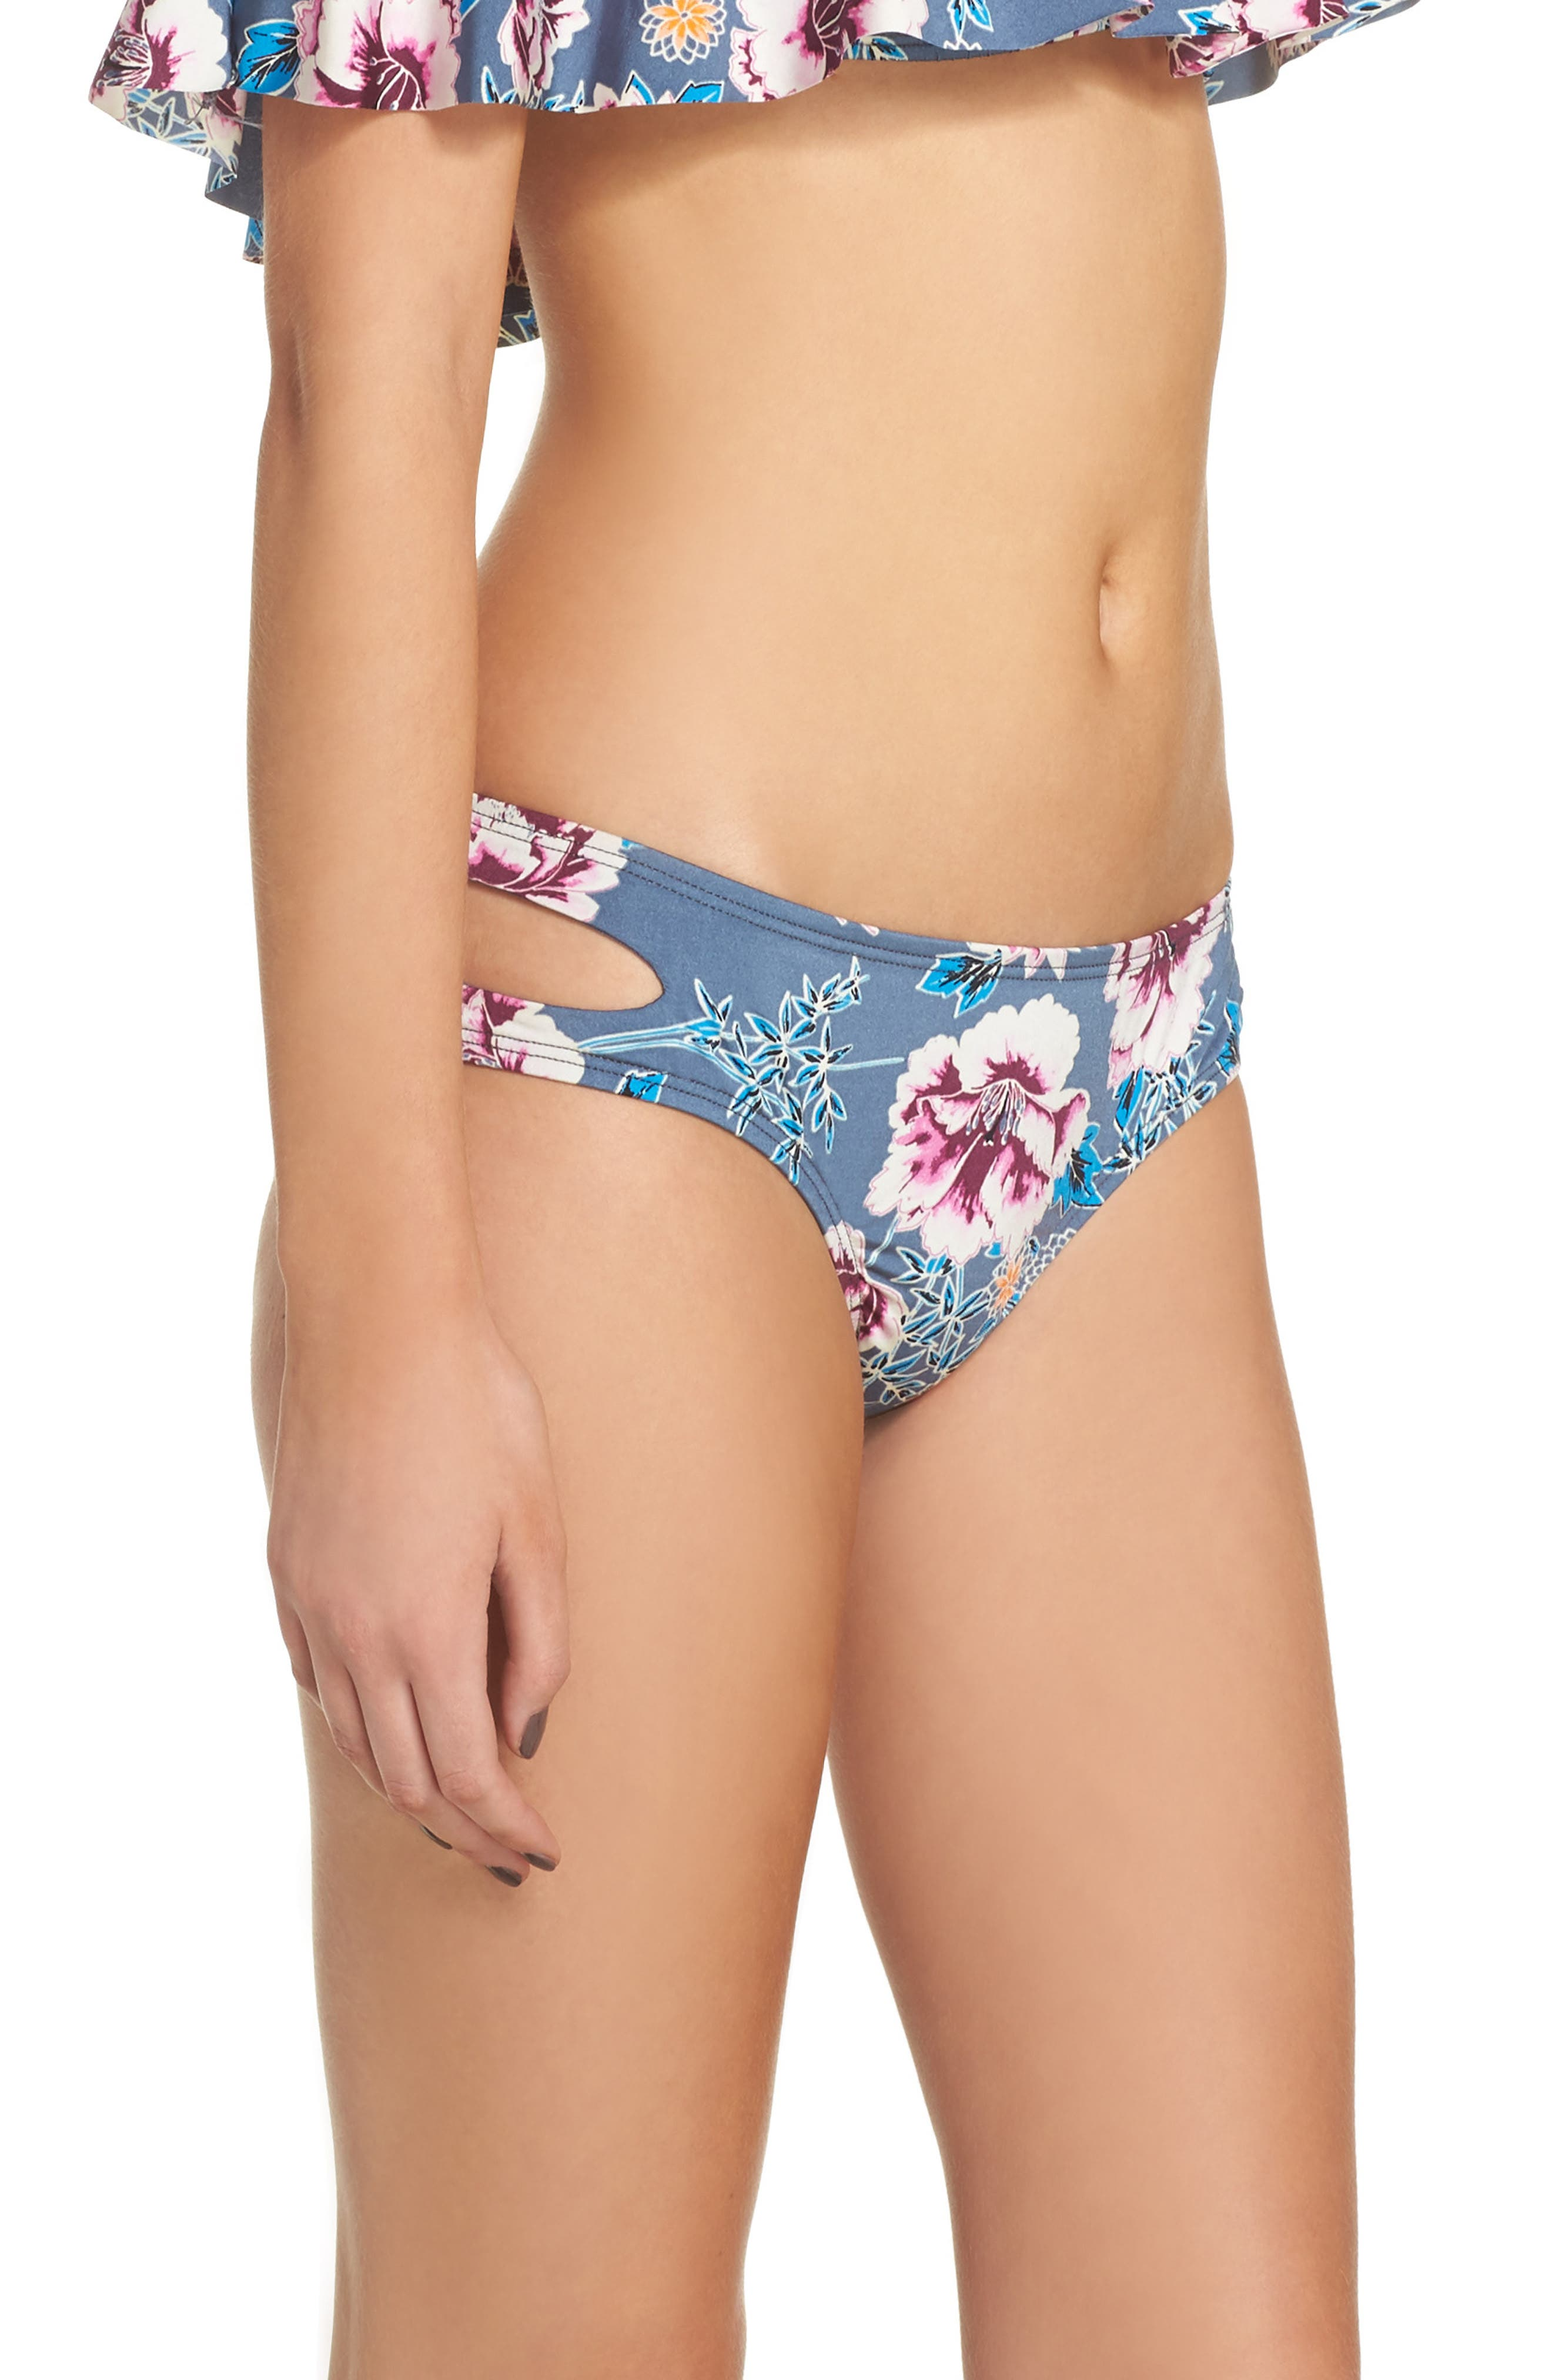 Bloom Cutout Hipster Bikini Bottoms,                             Alternate thumbnail 3, color,                             Grey